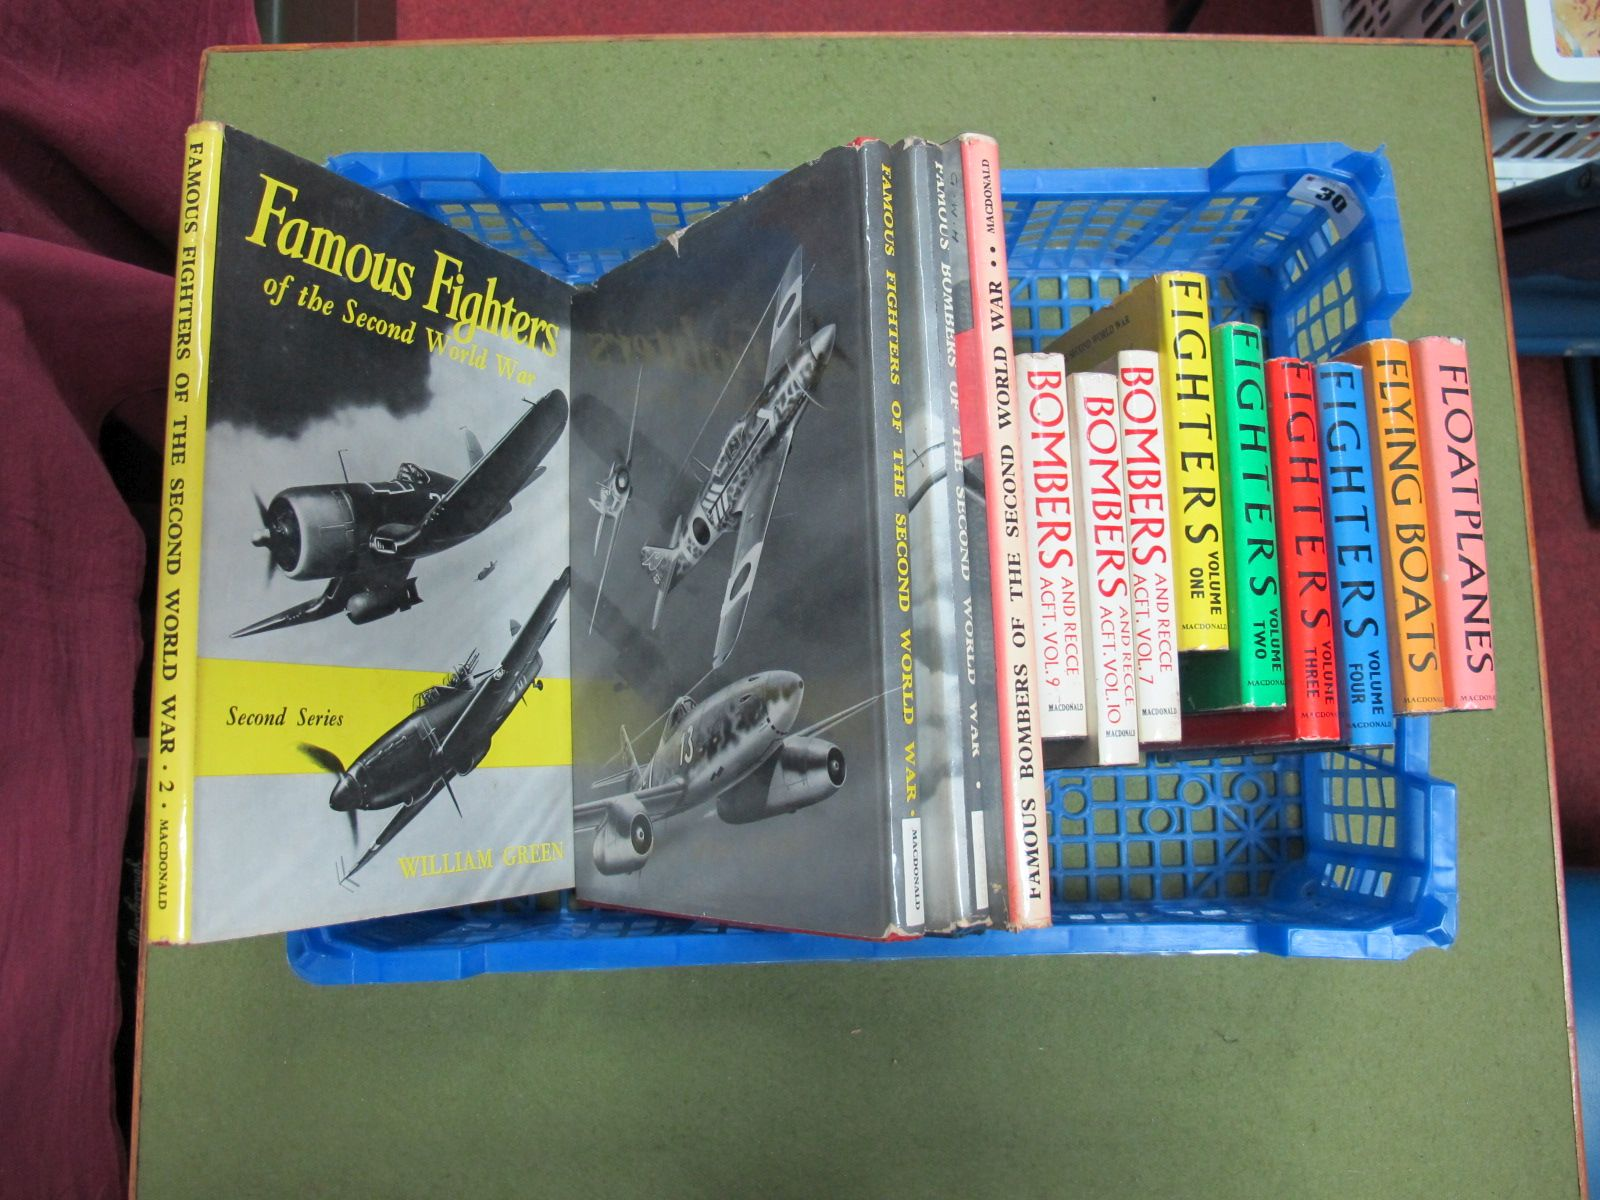 Lot 30 - A Collection of Ten Hardback Volumes Macdonald- War Planes of the Second World War, by William Green